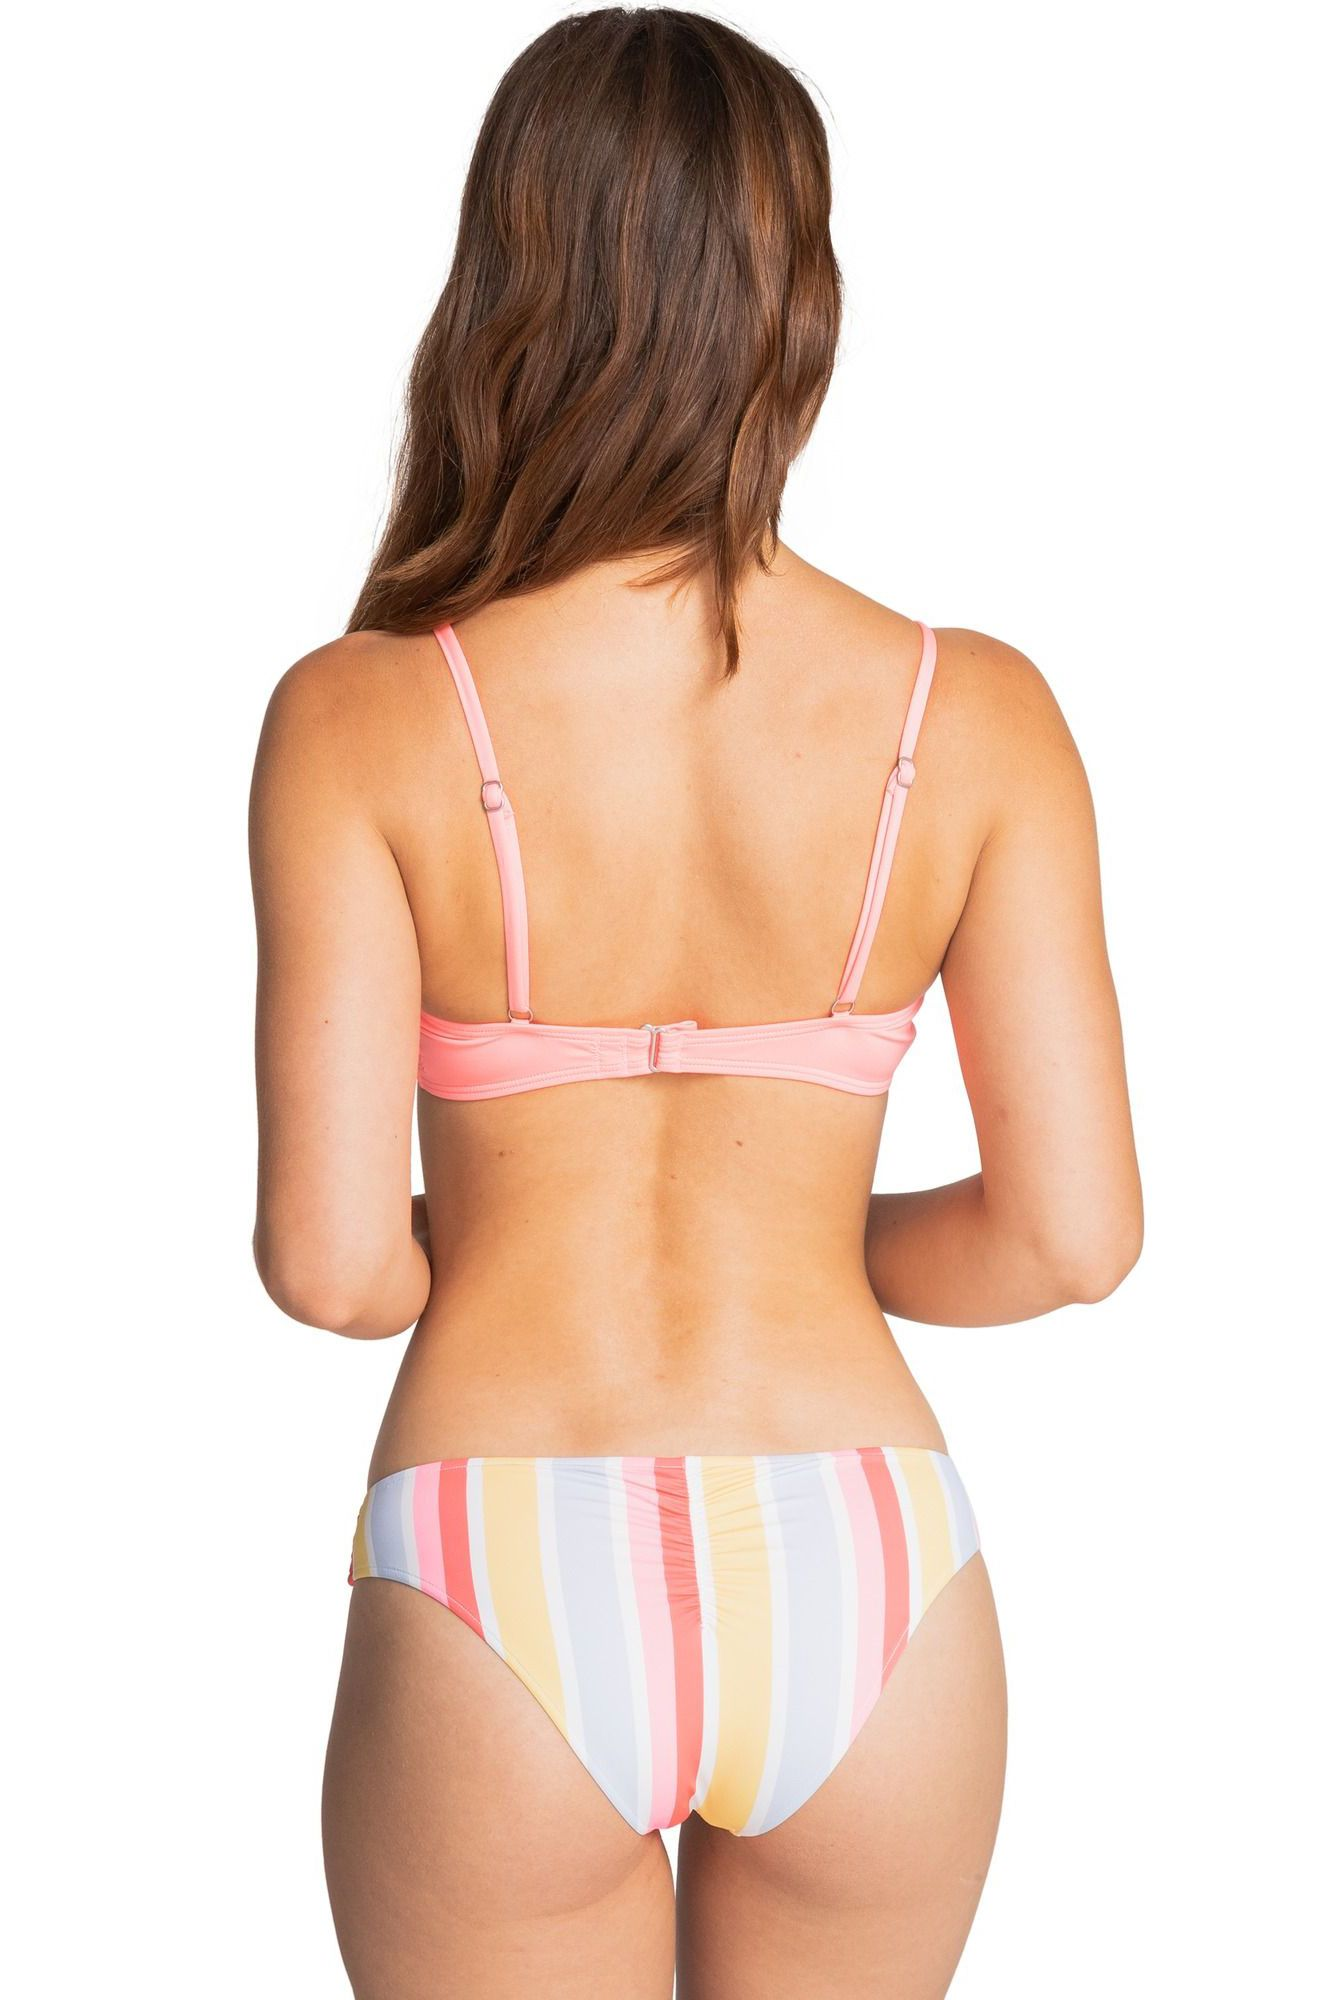 Bikini Top Billabong S.S KNOTTED TRILET SOL SEARCHER Acid Pink